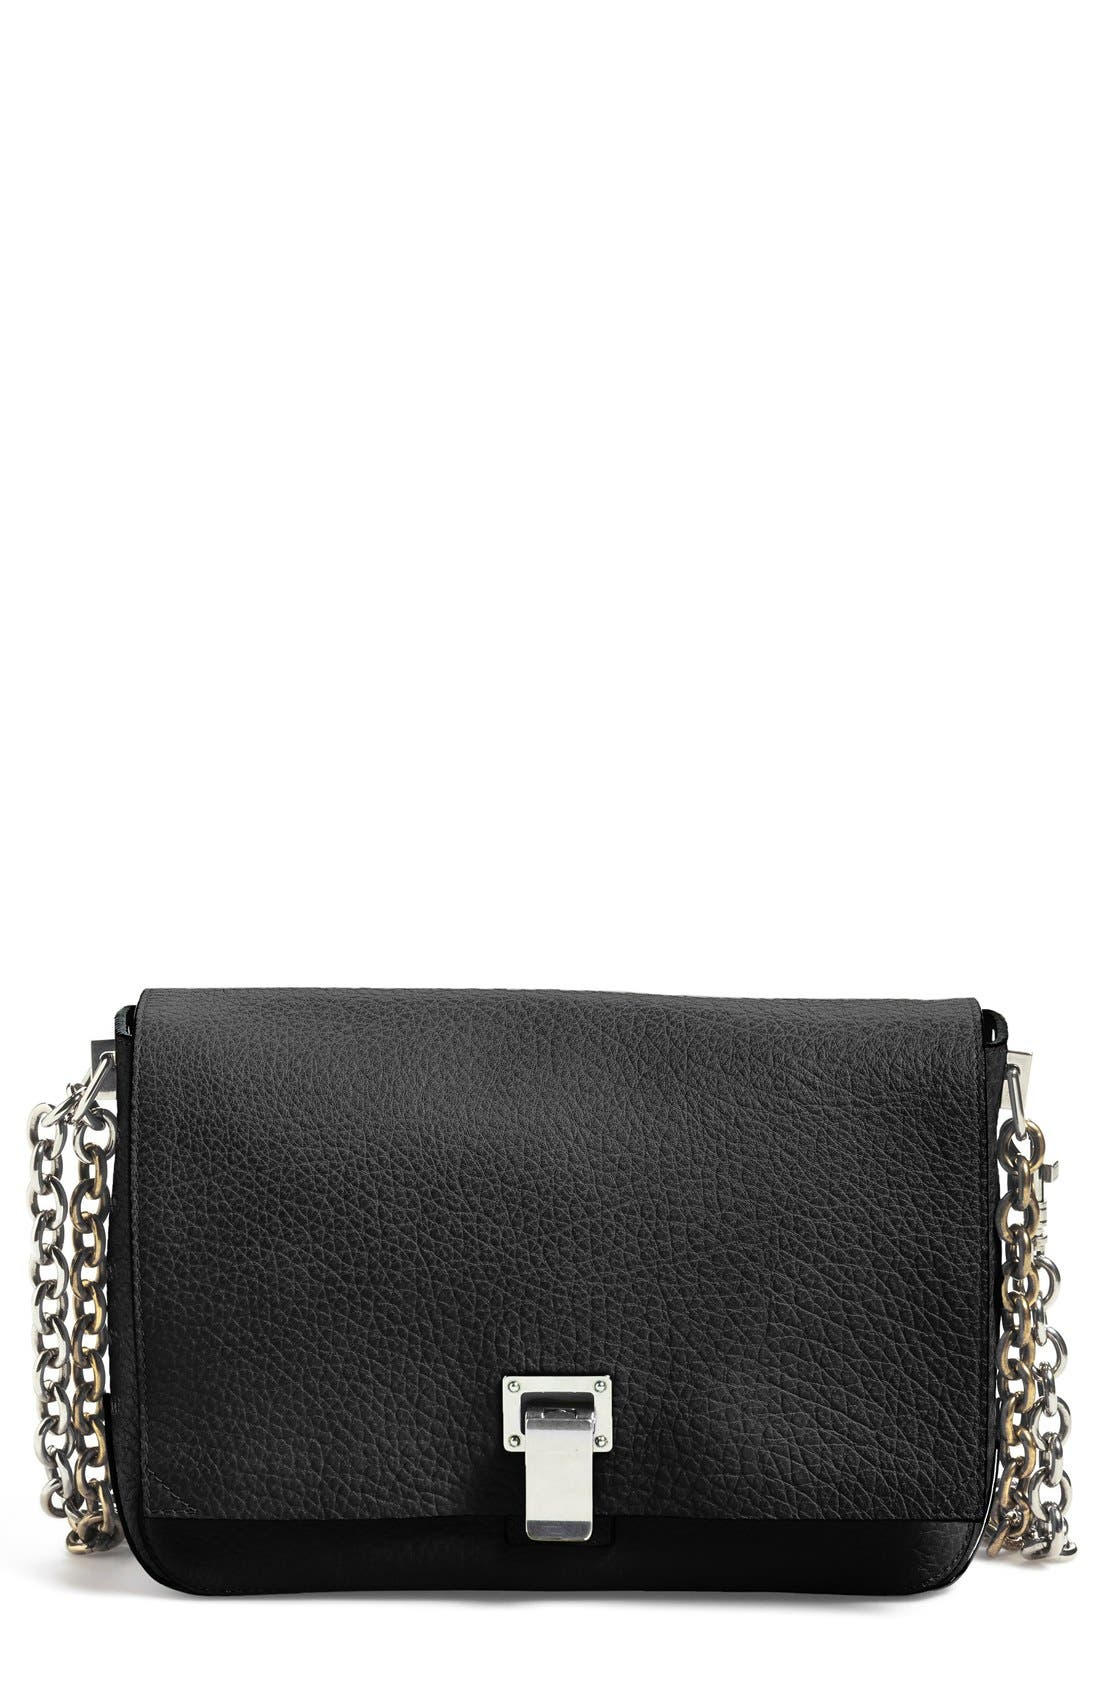 Main Image - Proenza Schouler 'Small Courier' Pebbled Leather Crossbody Bag